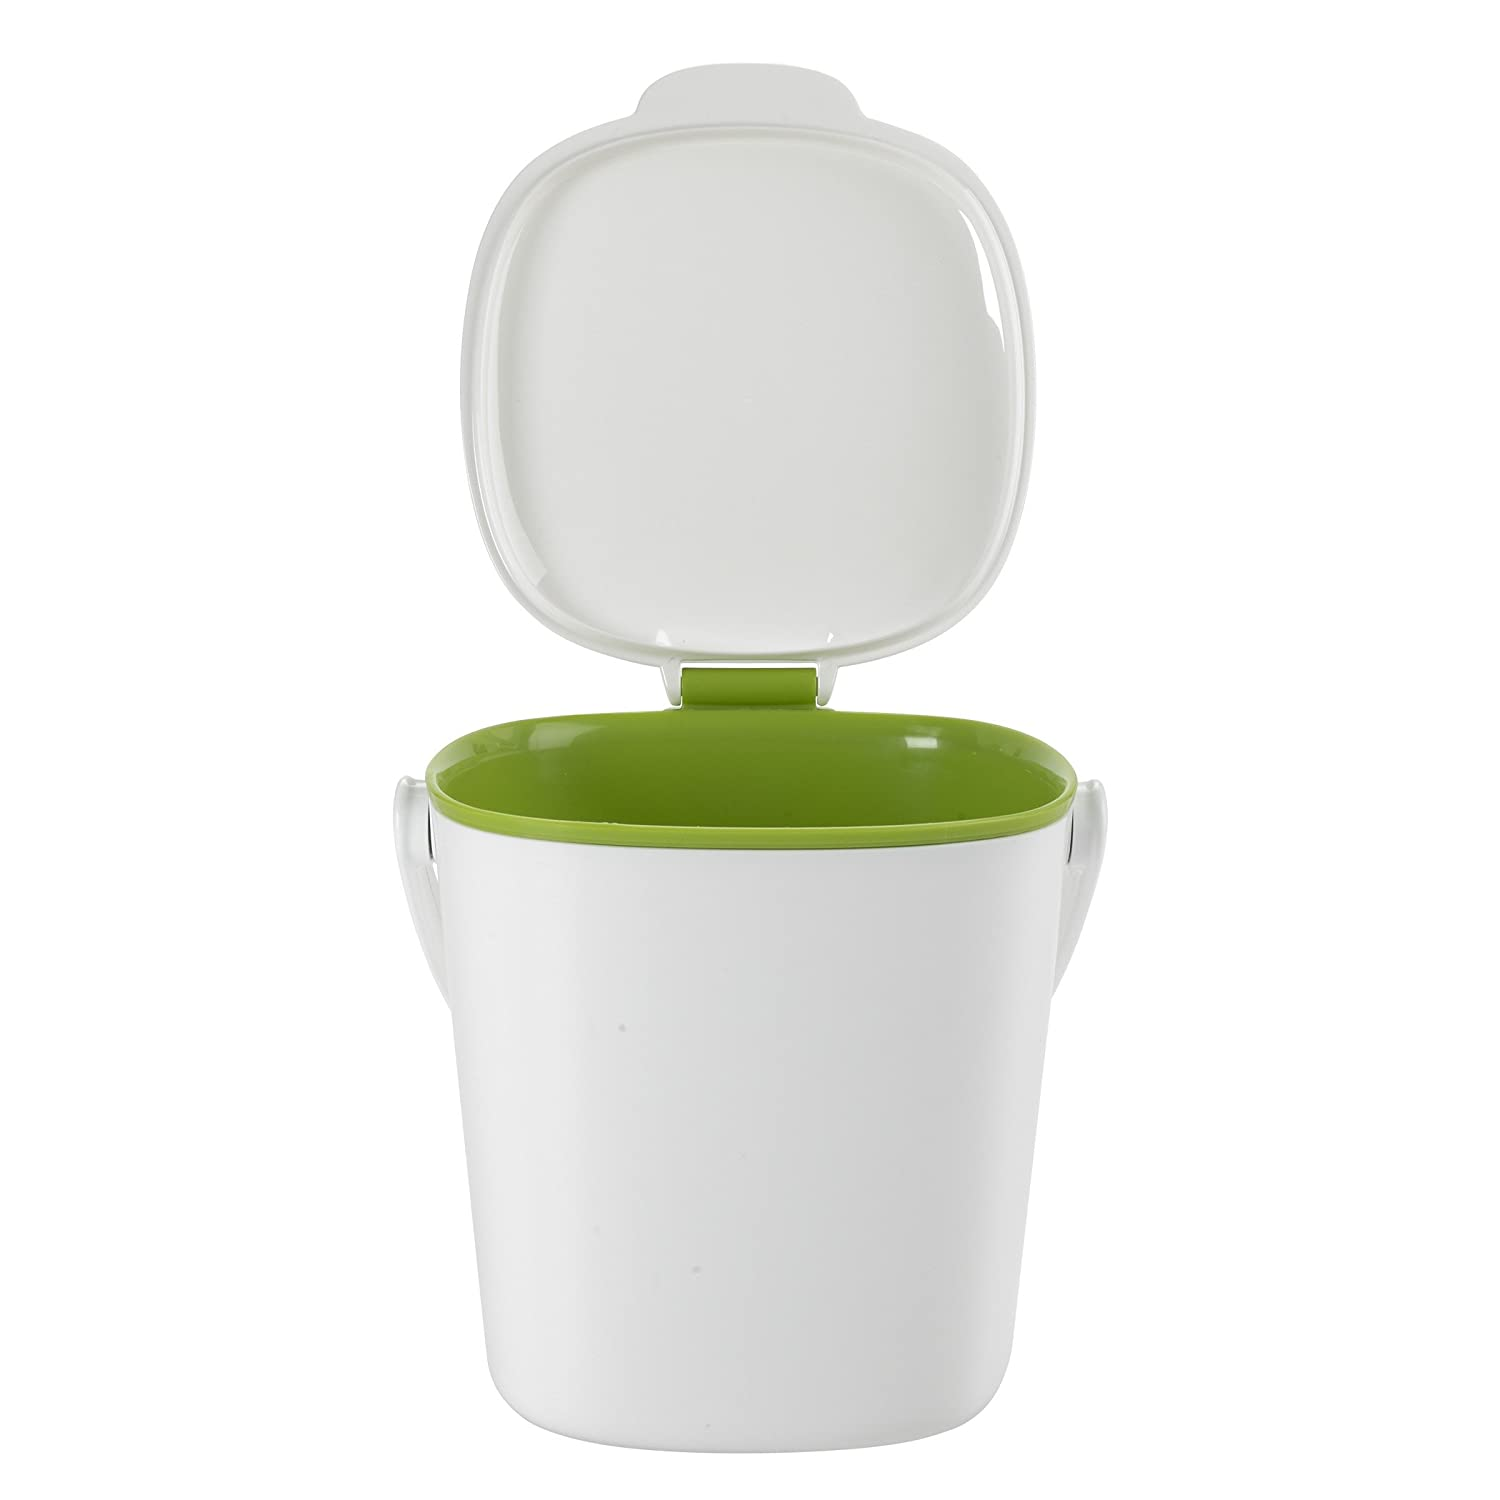 OXO Good Grips Compost Bin_Amazon